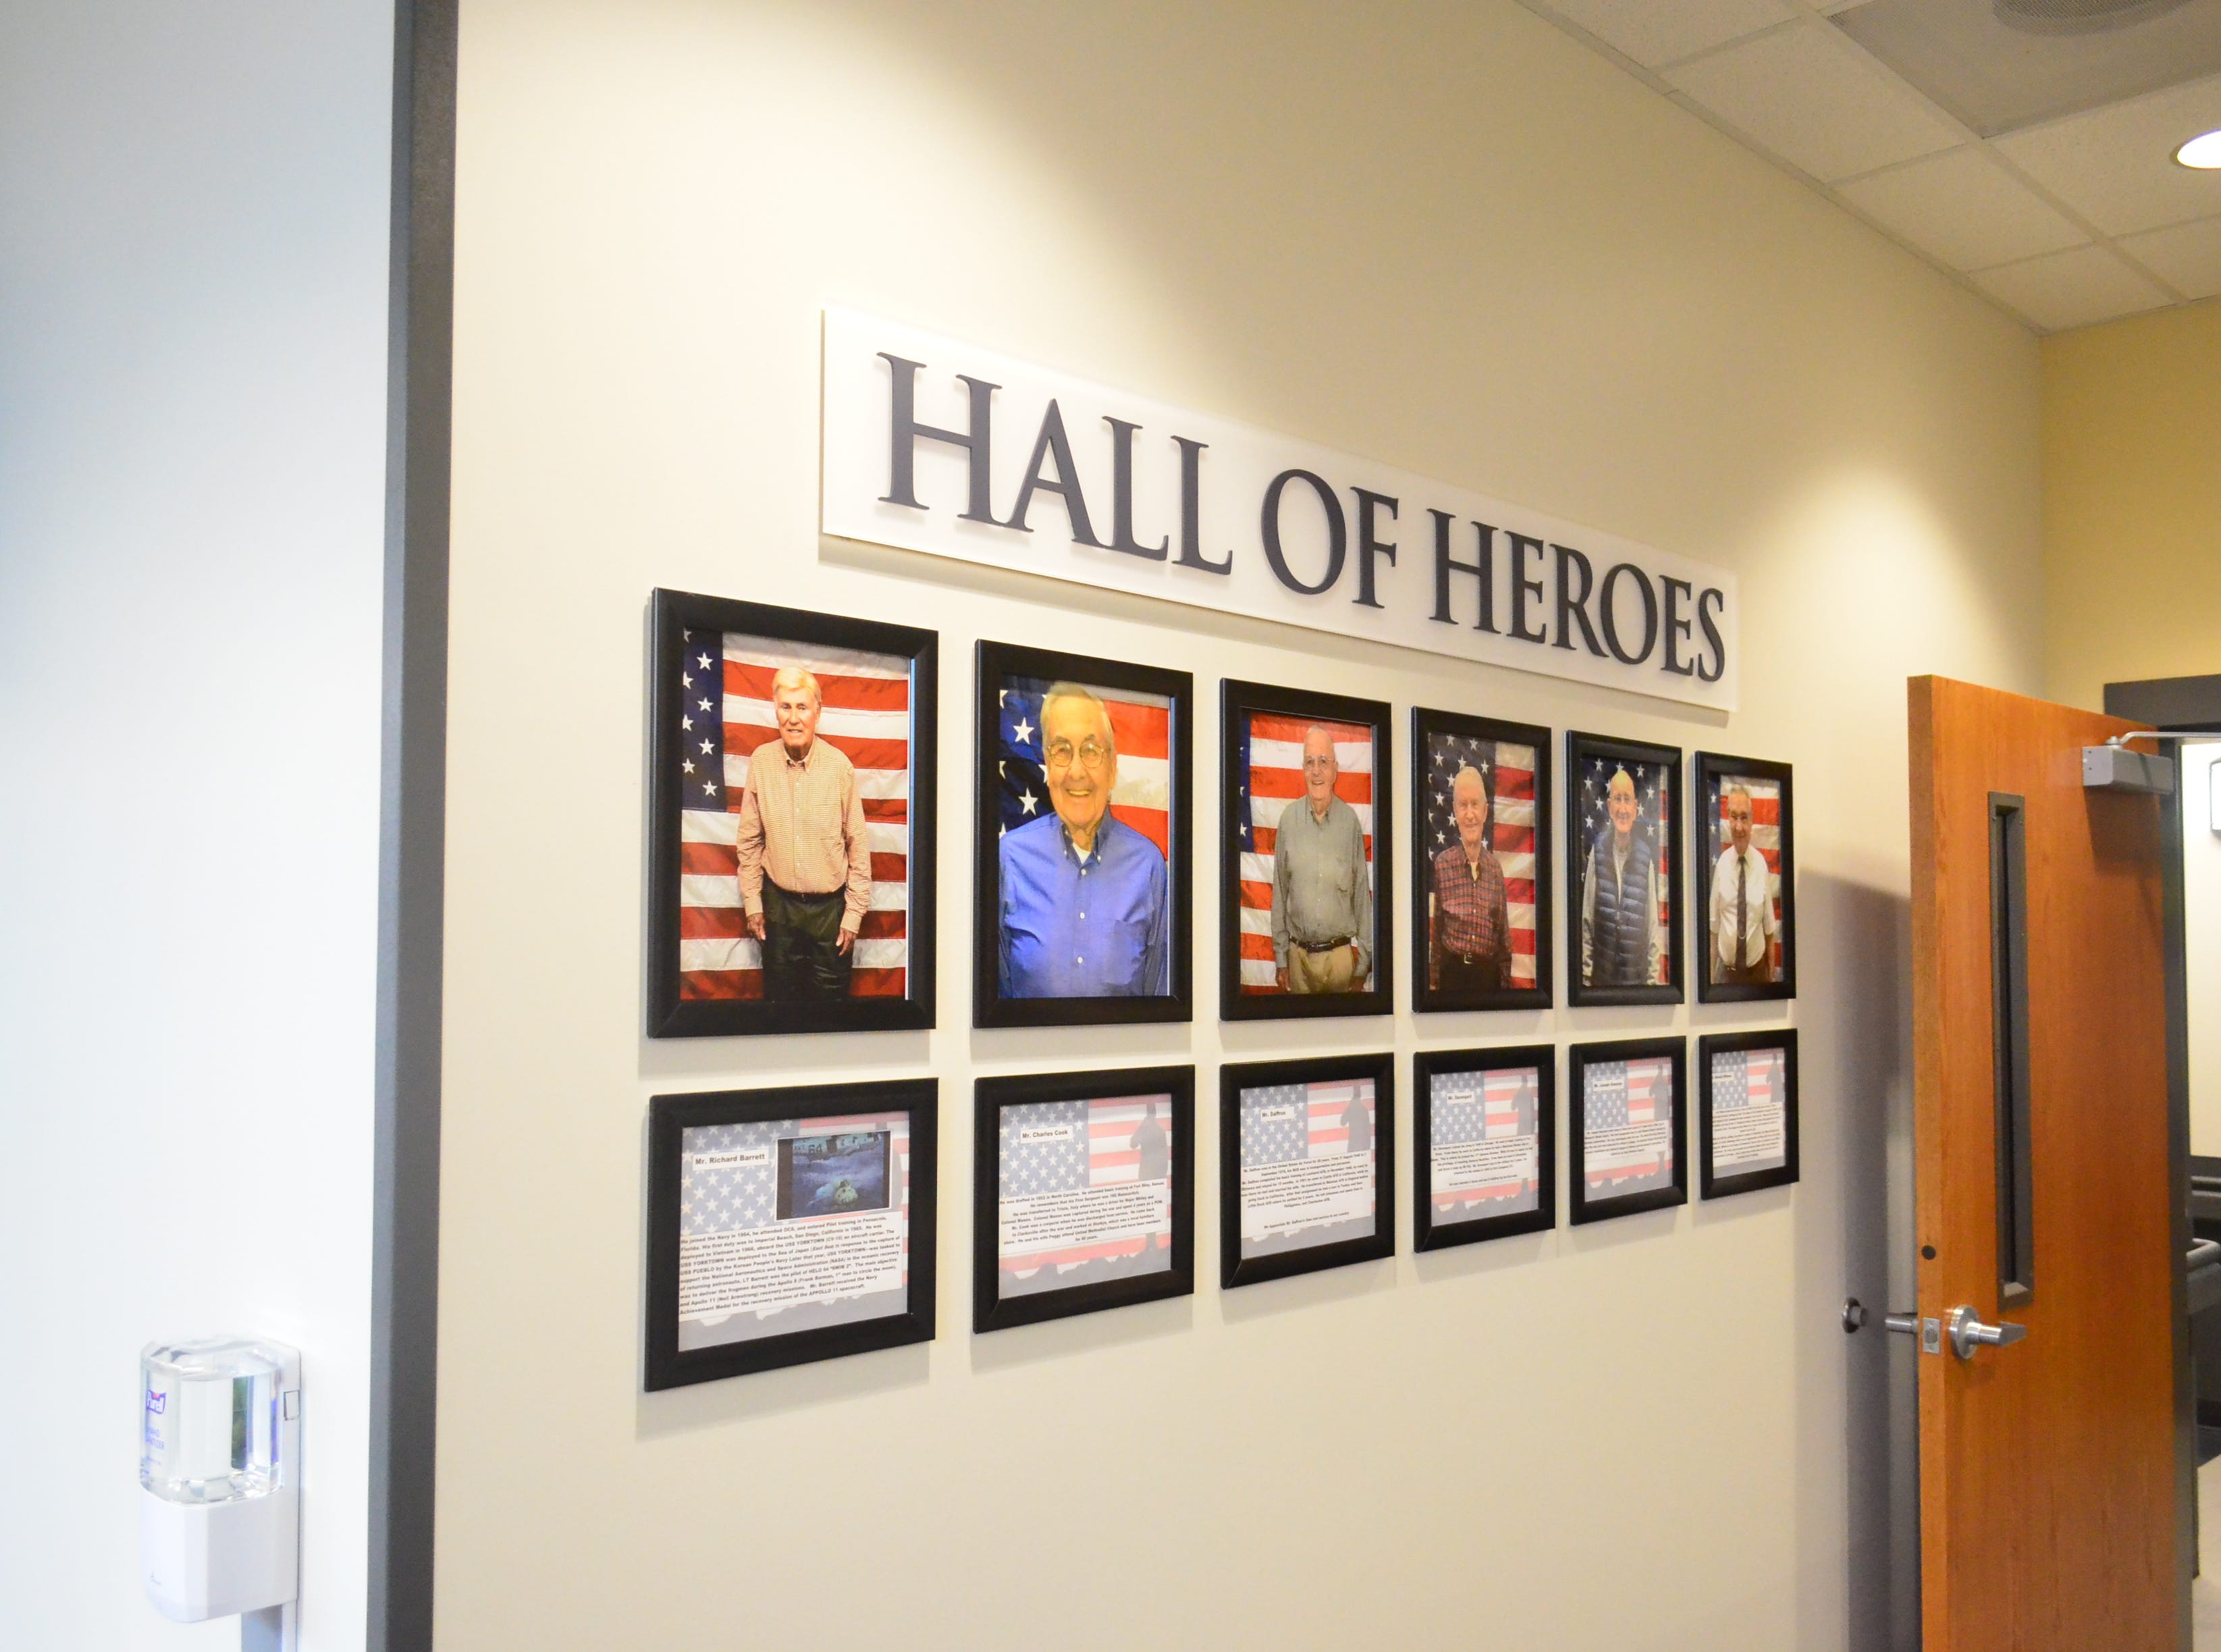 A Hall of Heroes, featuring photos and stories of veterans, pays tribute to some of the clinic's patients.